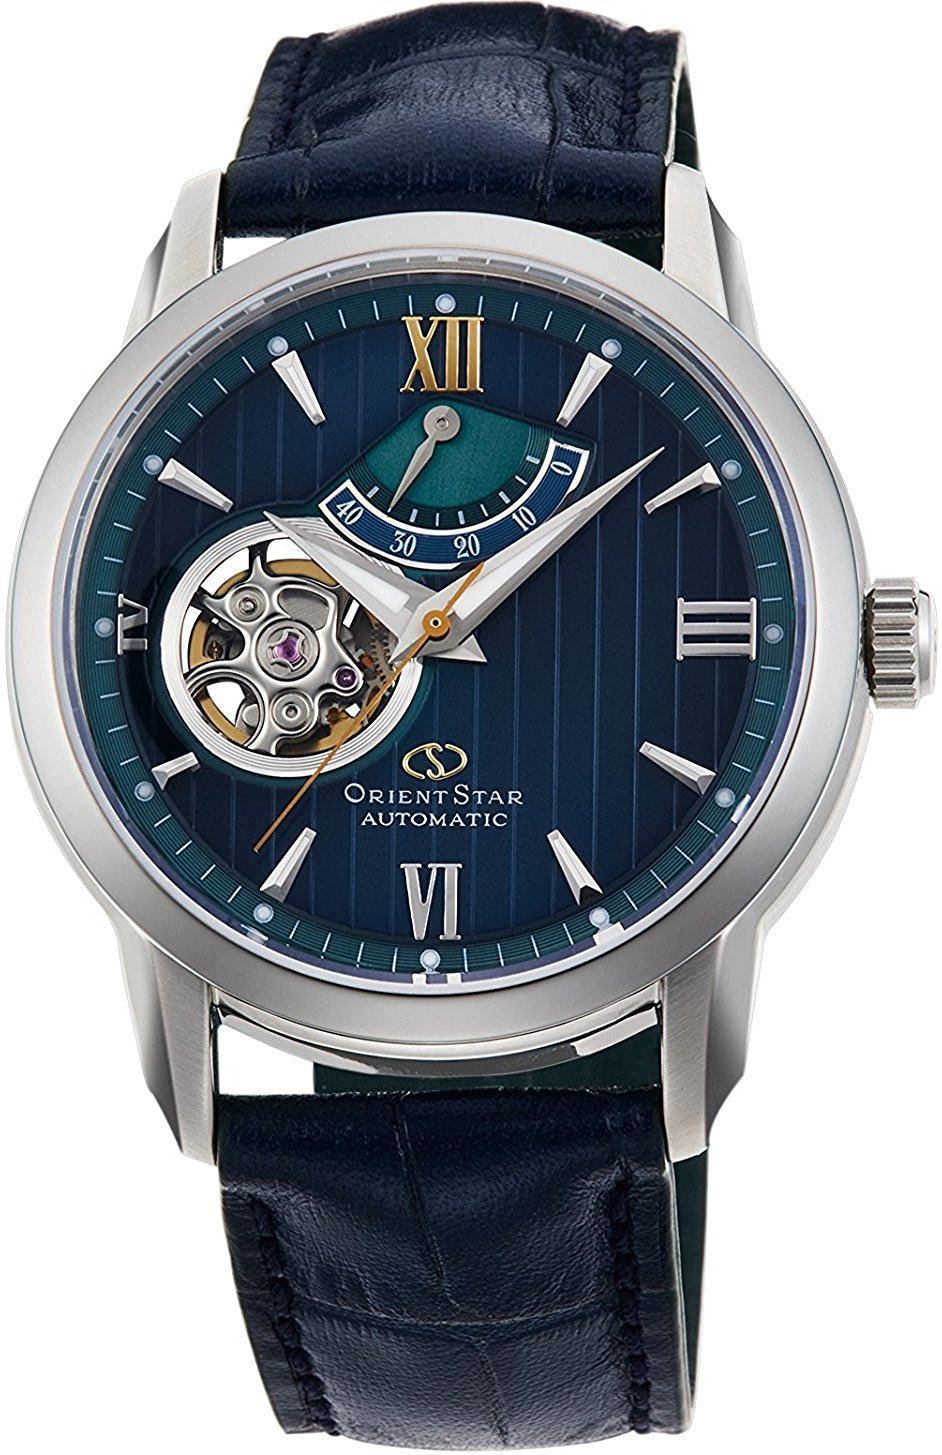 นาฬิกาผู้ชาย Orient รุ่น RE-DA0001L00B, Orient Star Open Heart Sapphire Automatic Limited Edition Men's Watch